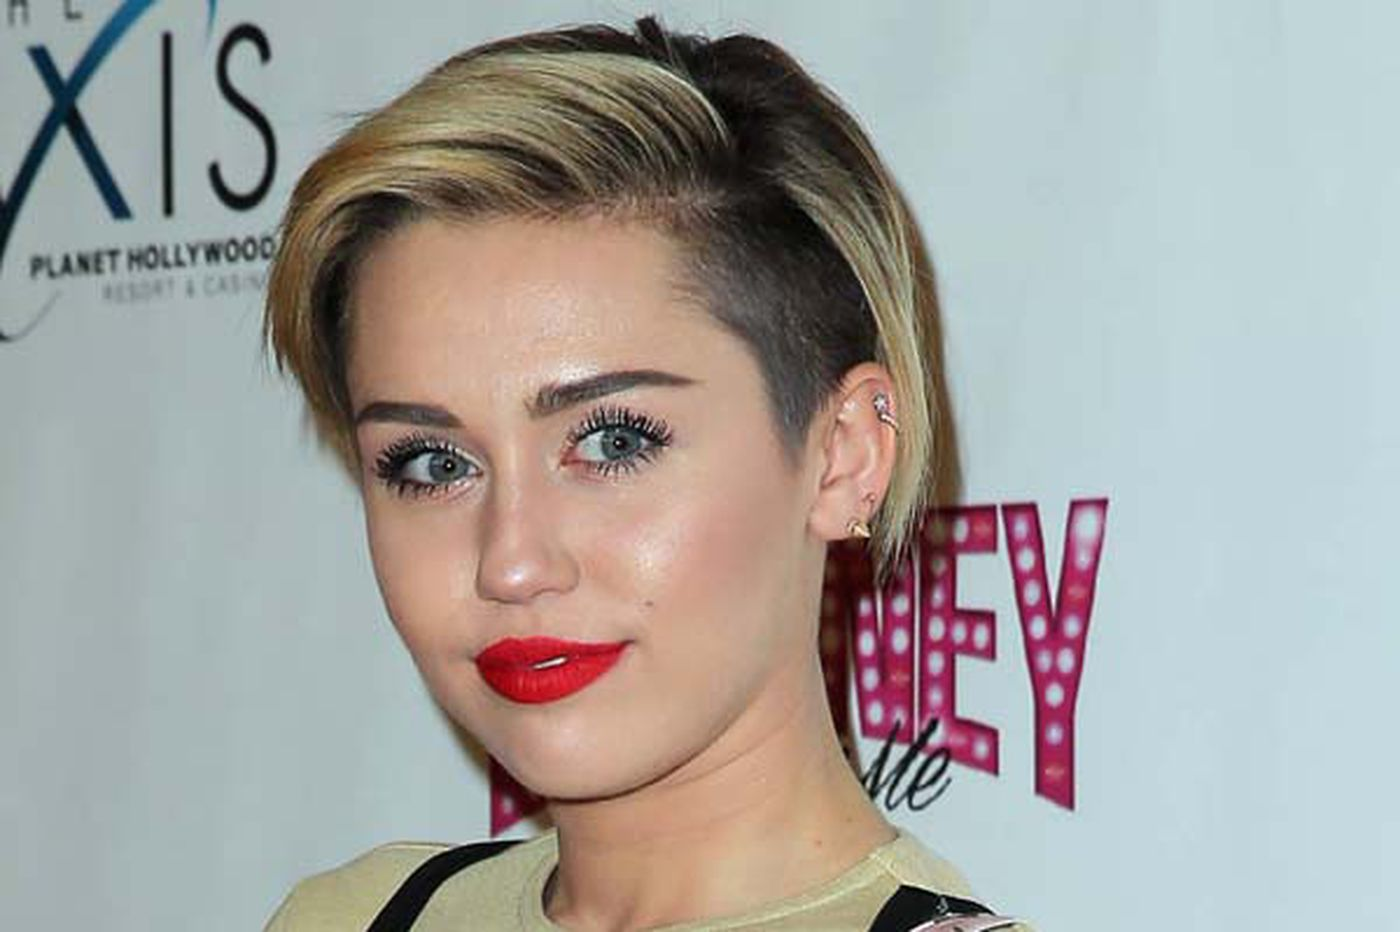 Miley leaves hospital, set to head to Europe